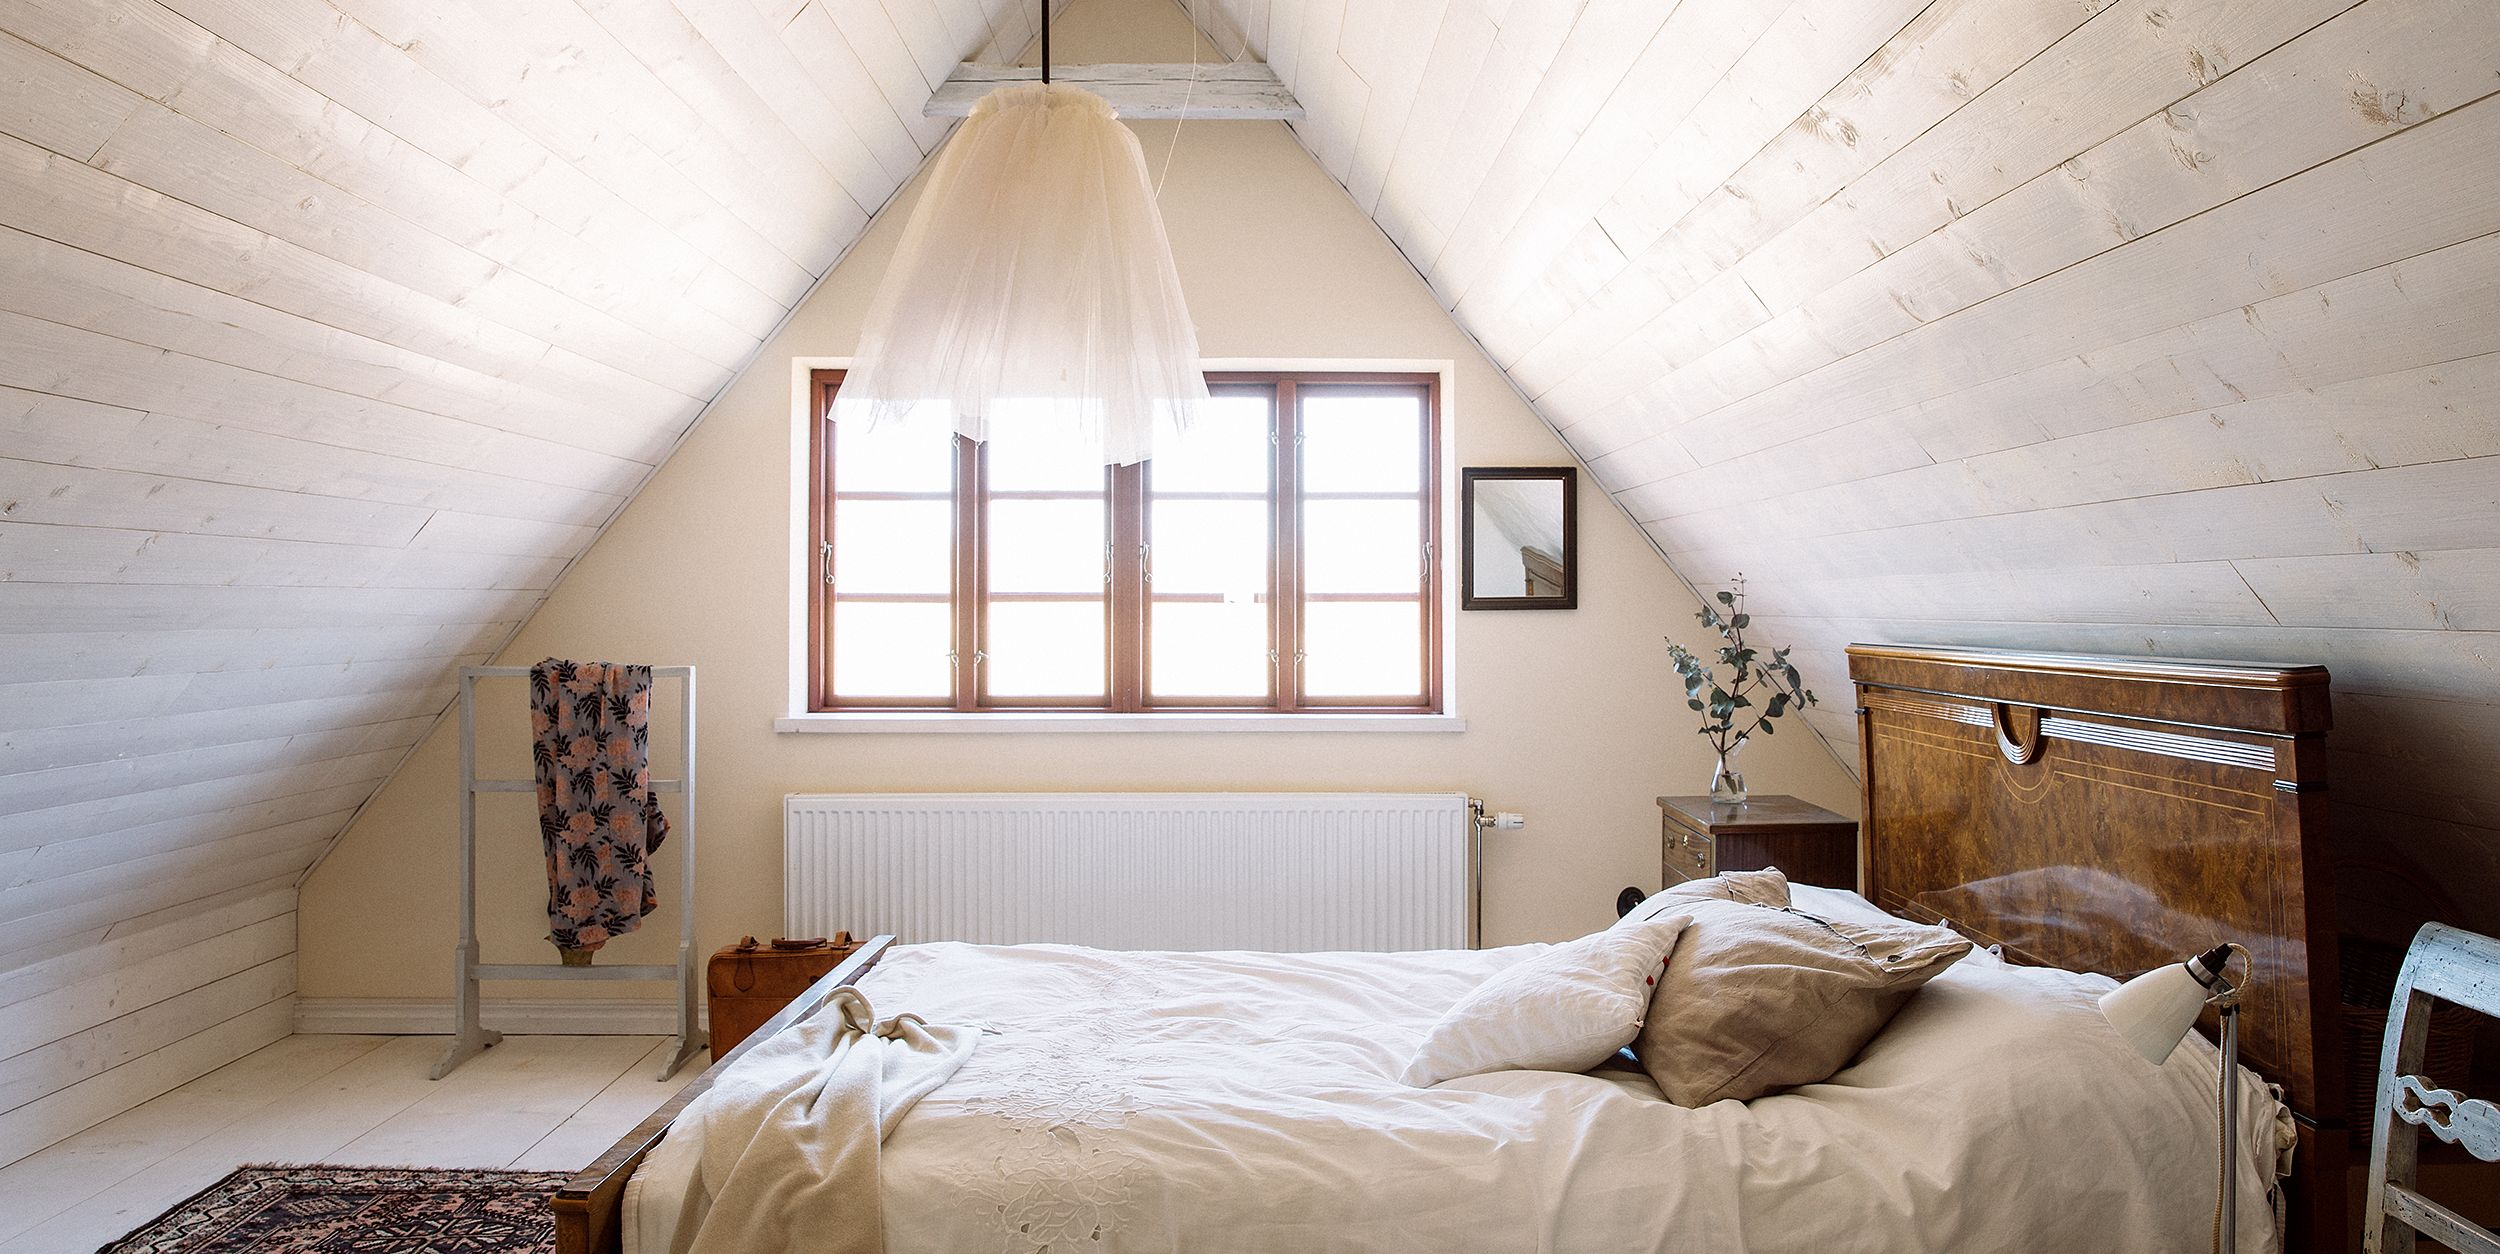 These 16 Dreamy Attic Rooms Will Make You Swoon